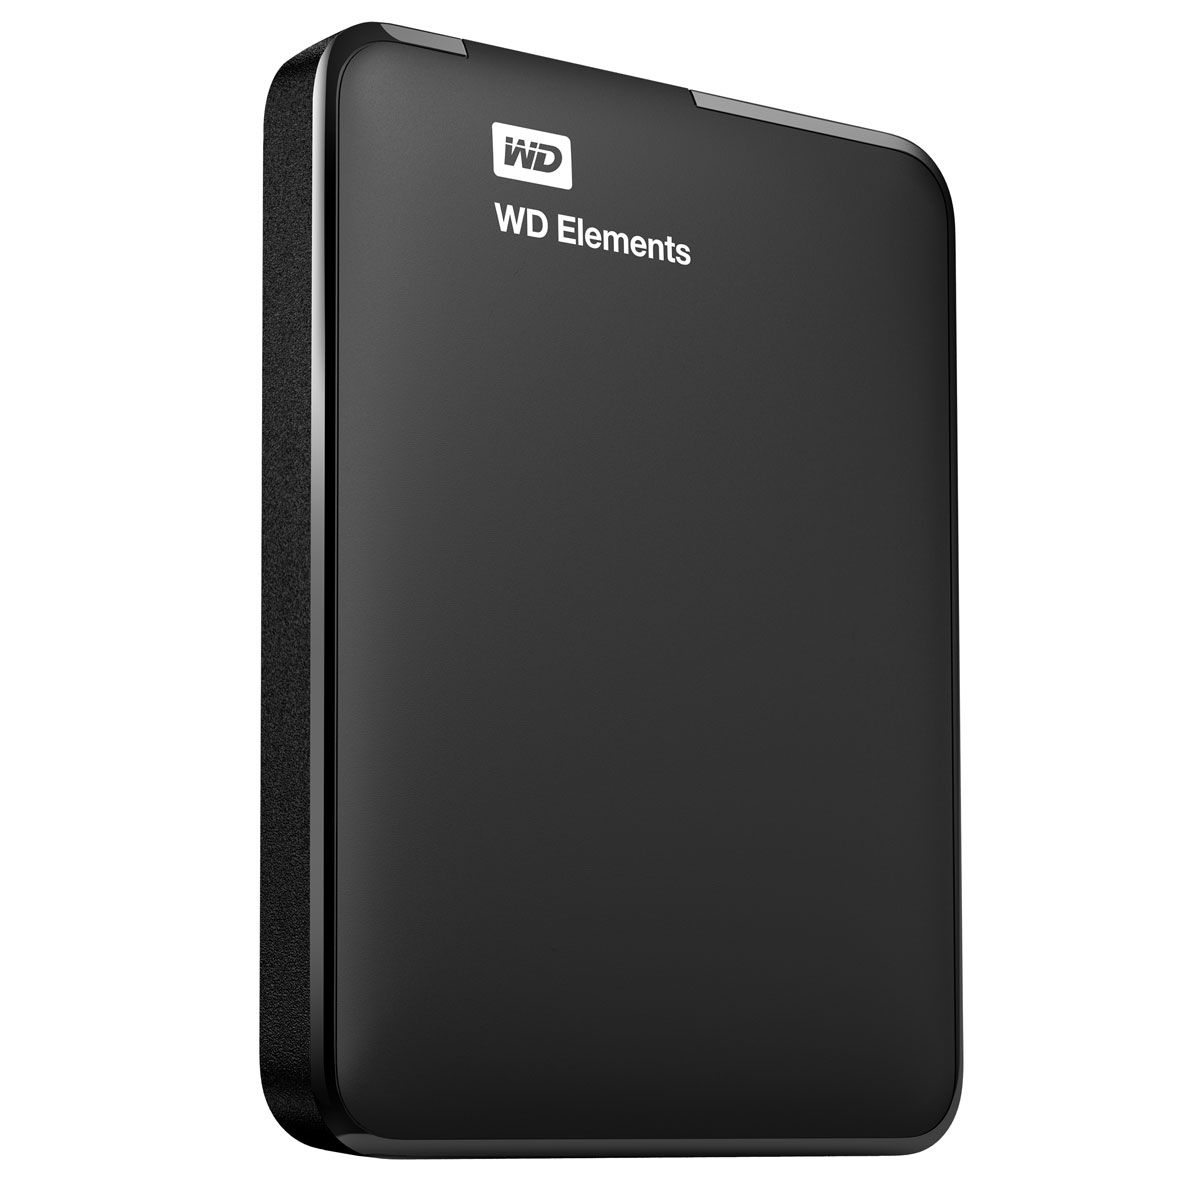 wd elements portable 1 to noir usb 3 0 disque dur externe western digital sur ldlc. Black Bedroom Furniture Sets. Home Design Ideas